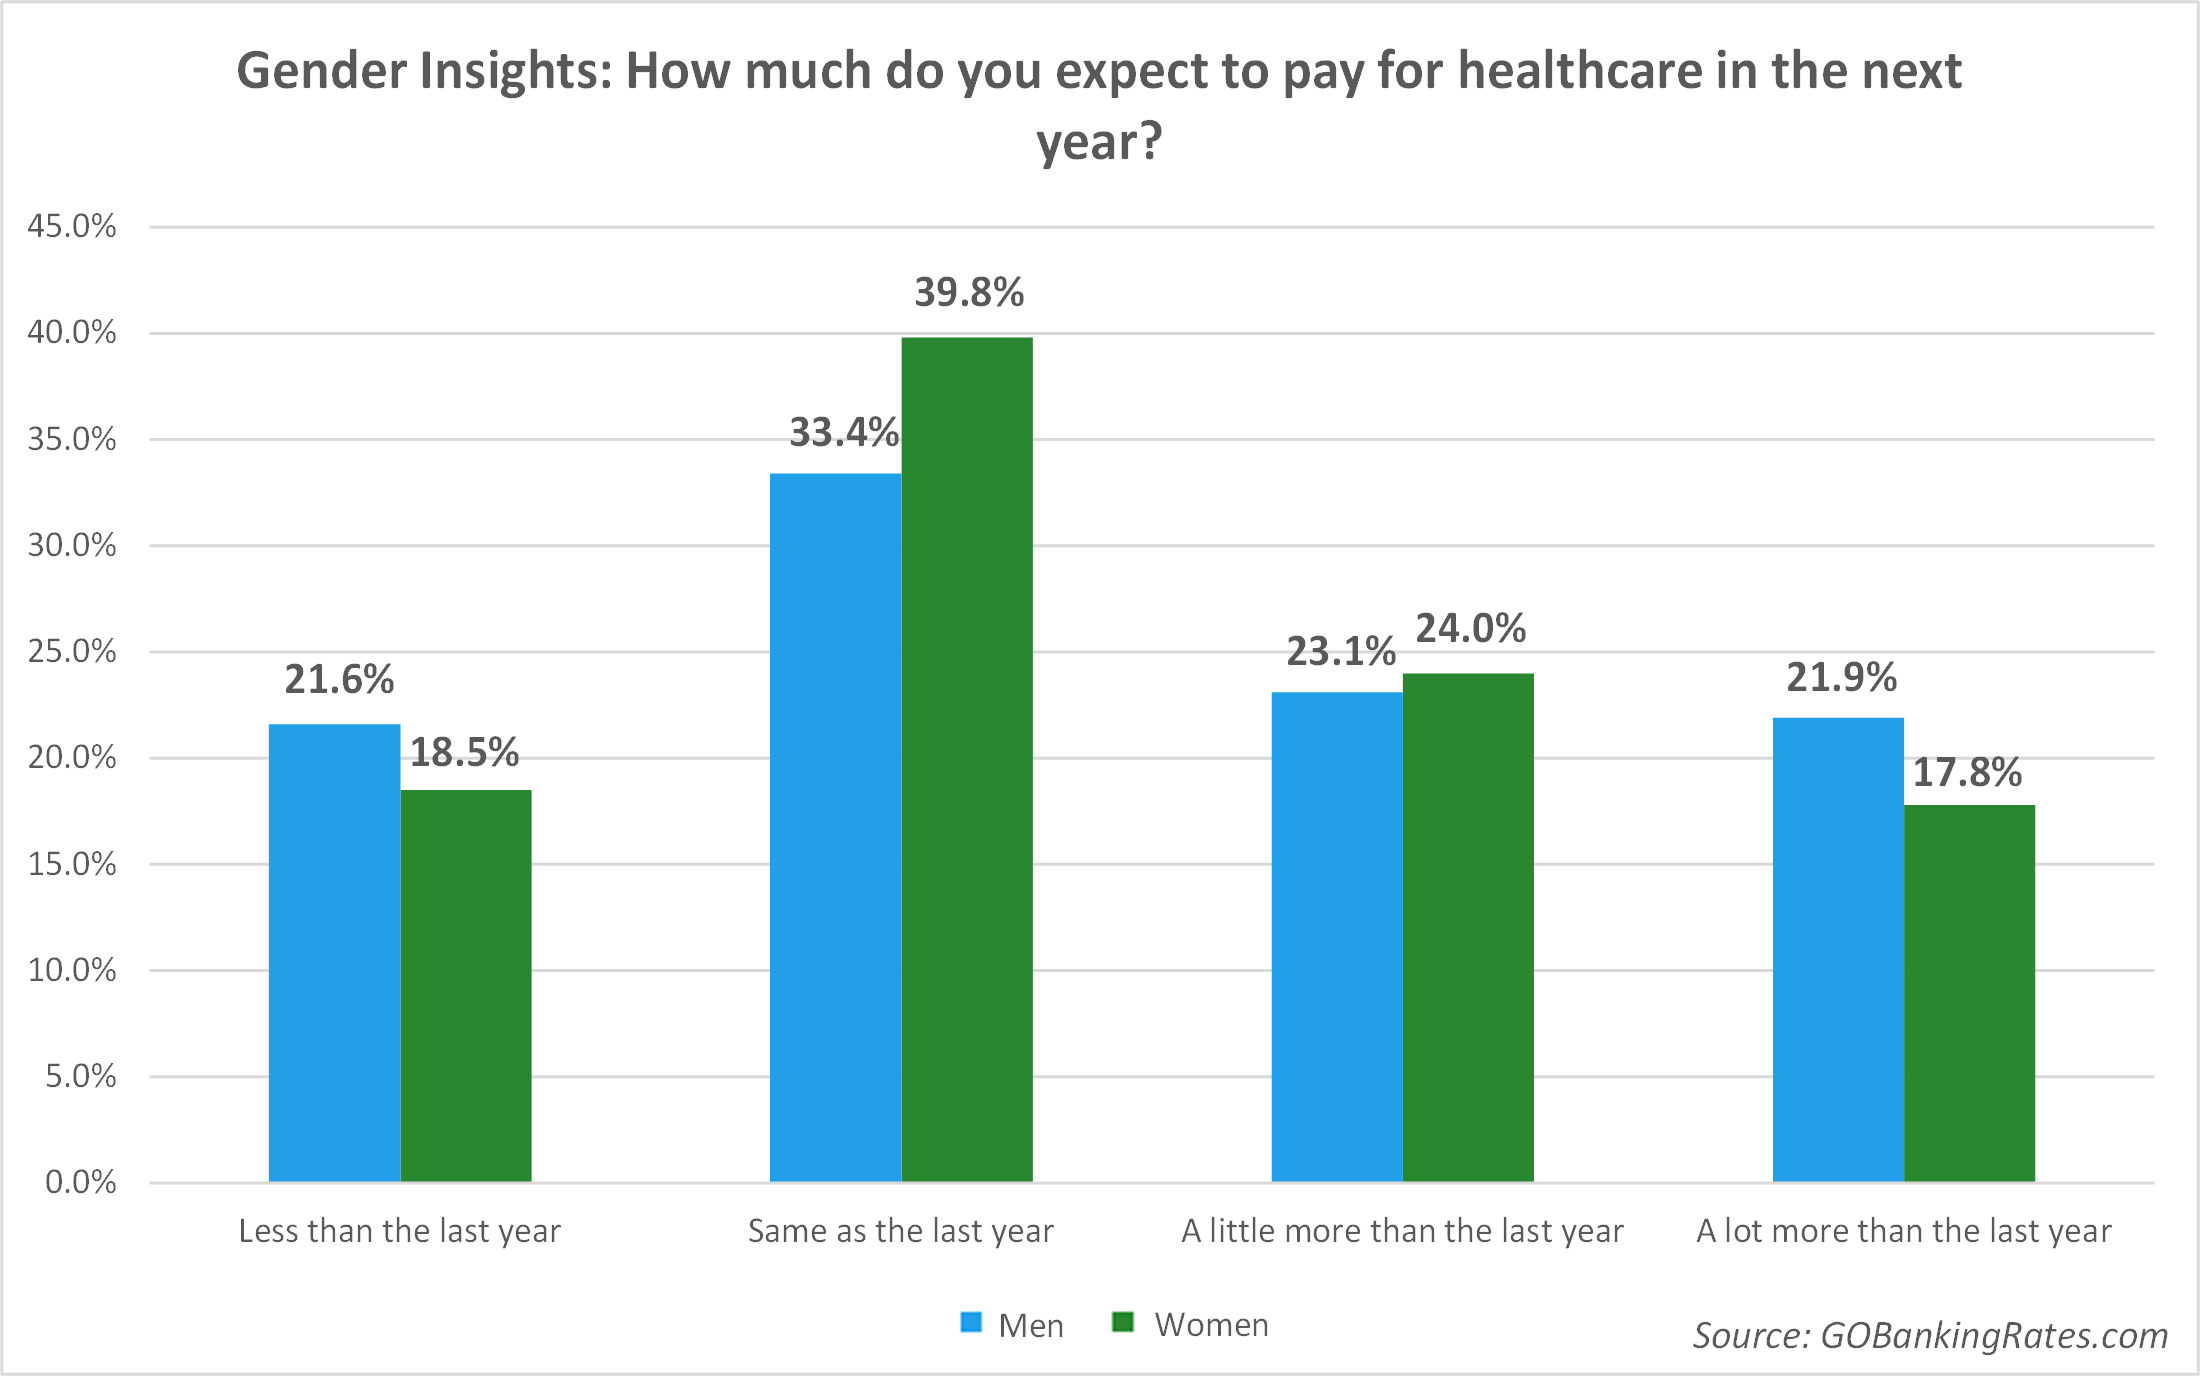 Gender Insights: How much to you expect to pay for healthcare in the next year?